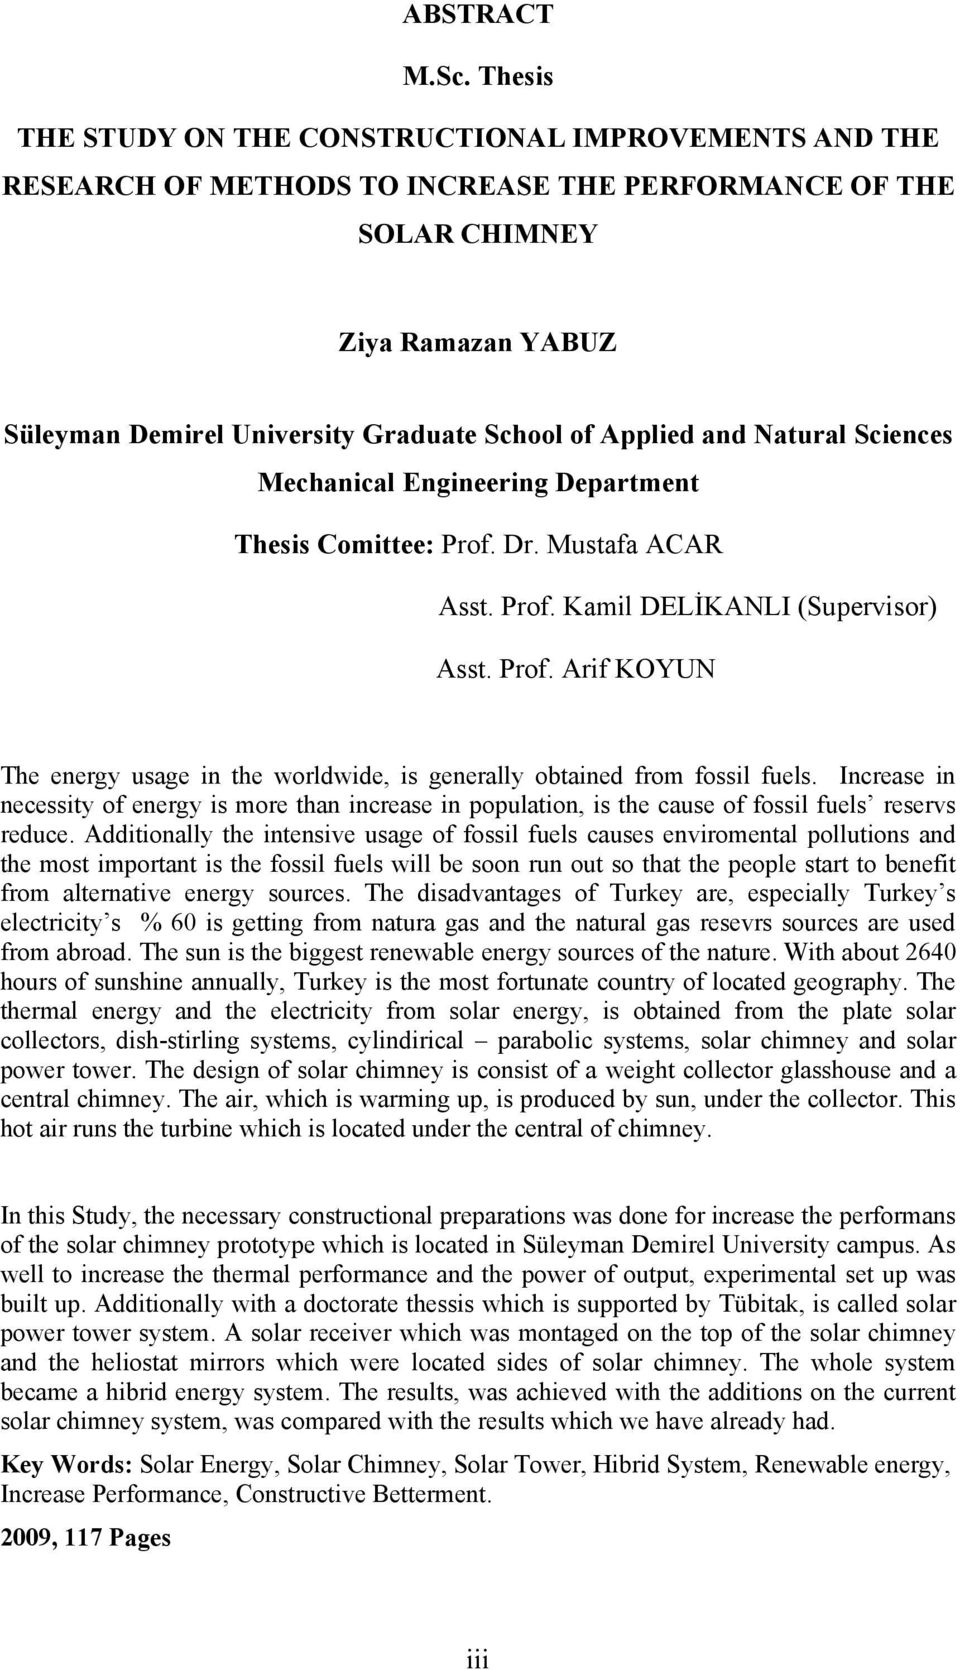 Applied and Natural Sciences Mechanical Engineering Department Thesis Comittee: Prof. Dr. Mustafa ACAR Asst. Prof. Kamil DELİKANLI (Supervisor) Asst. Prof. Arif KOYUN The energy usage in the worldwide, is generally obtained from fossil fuels.